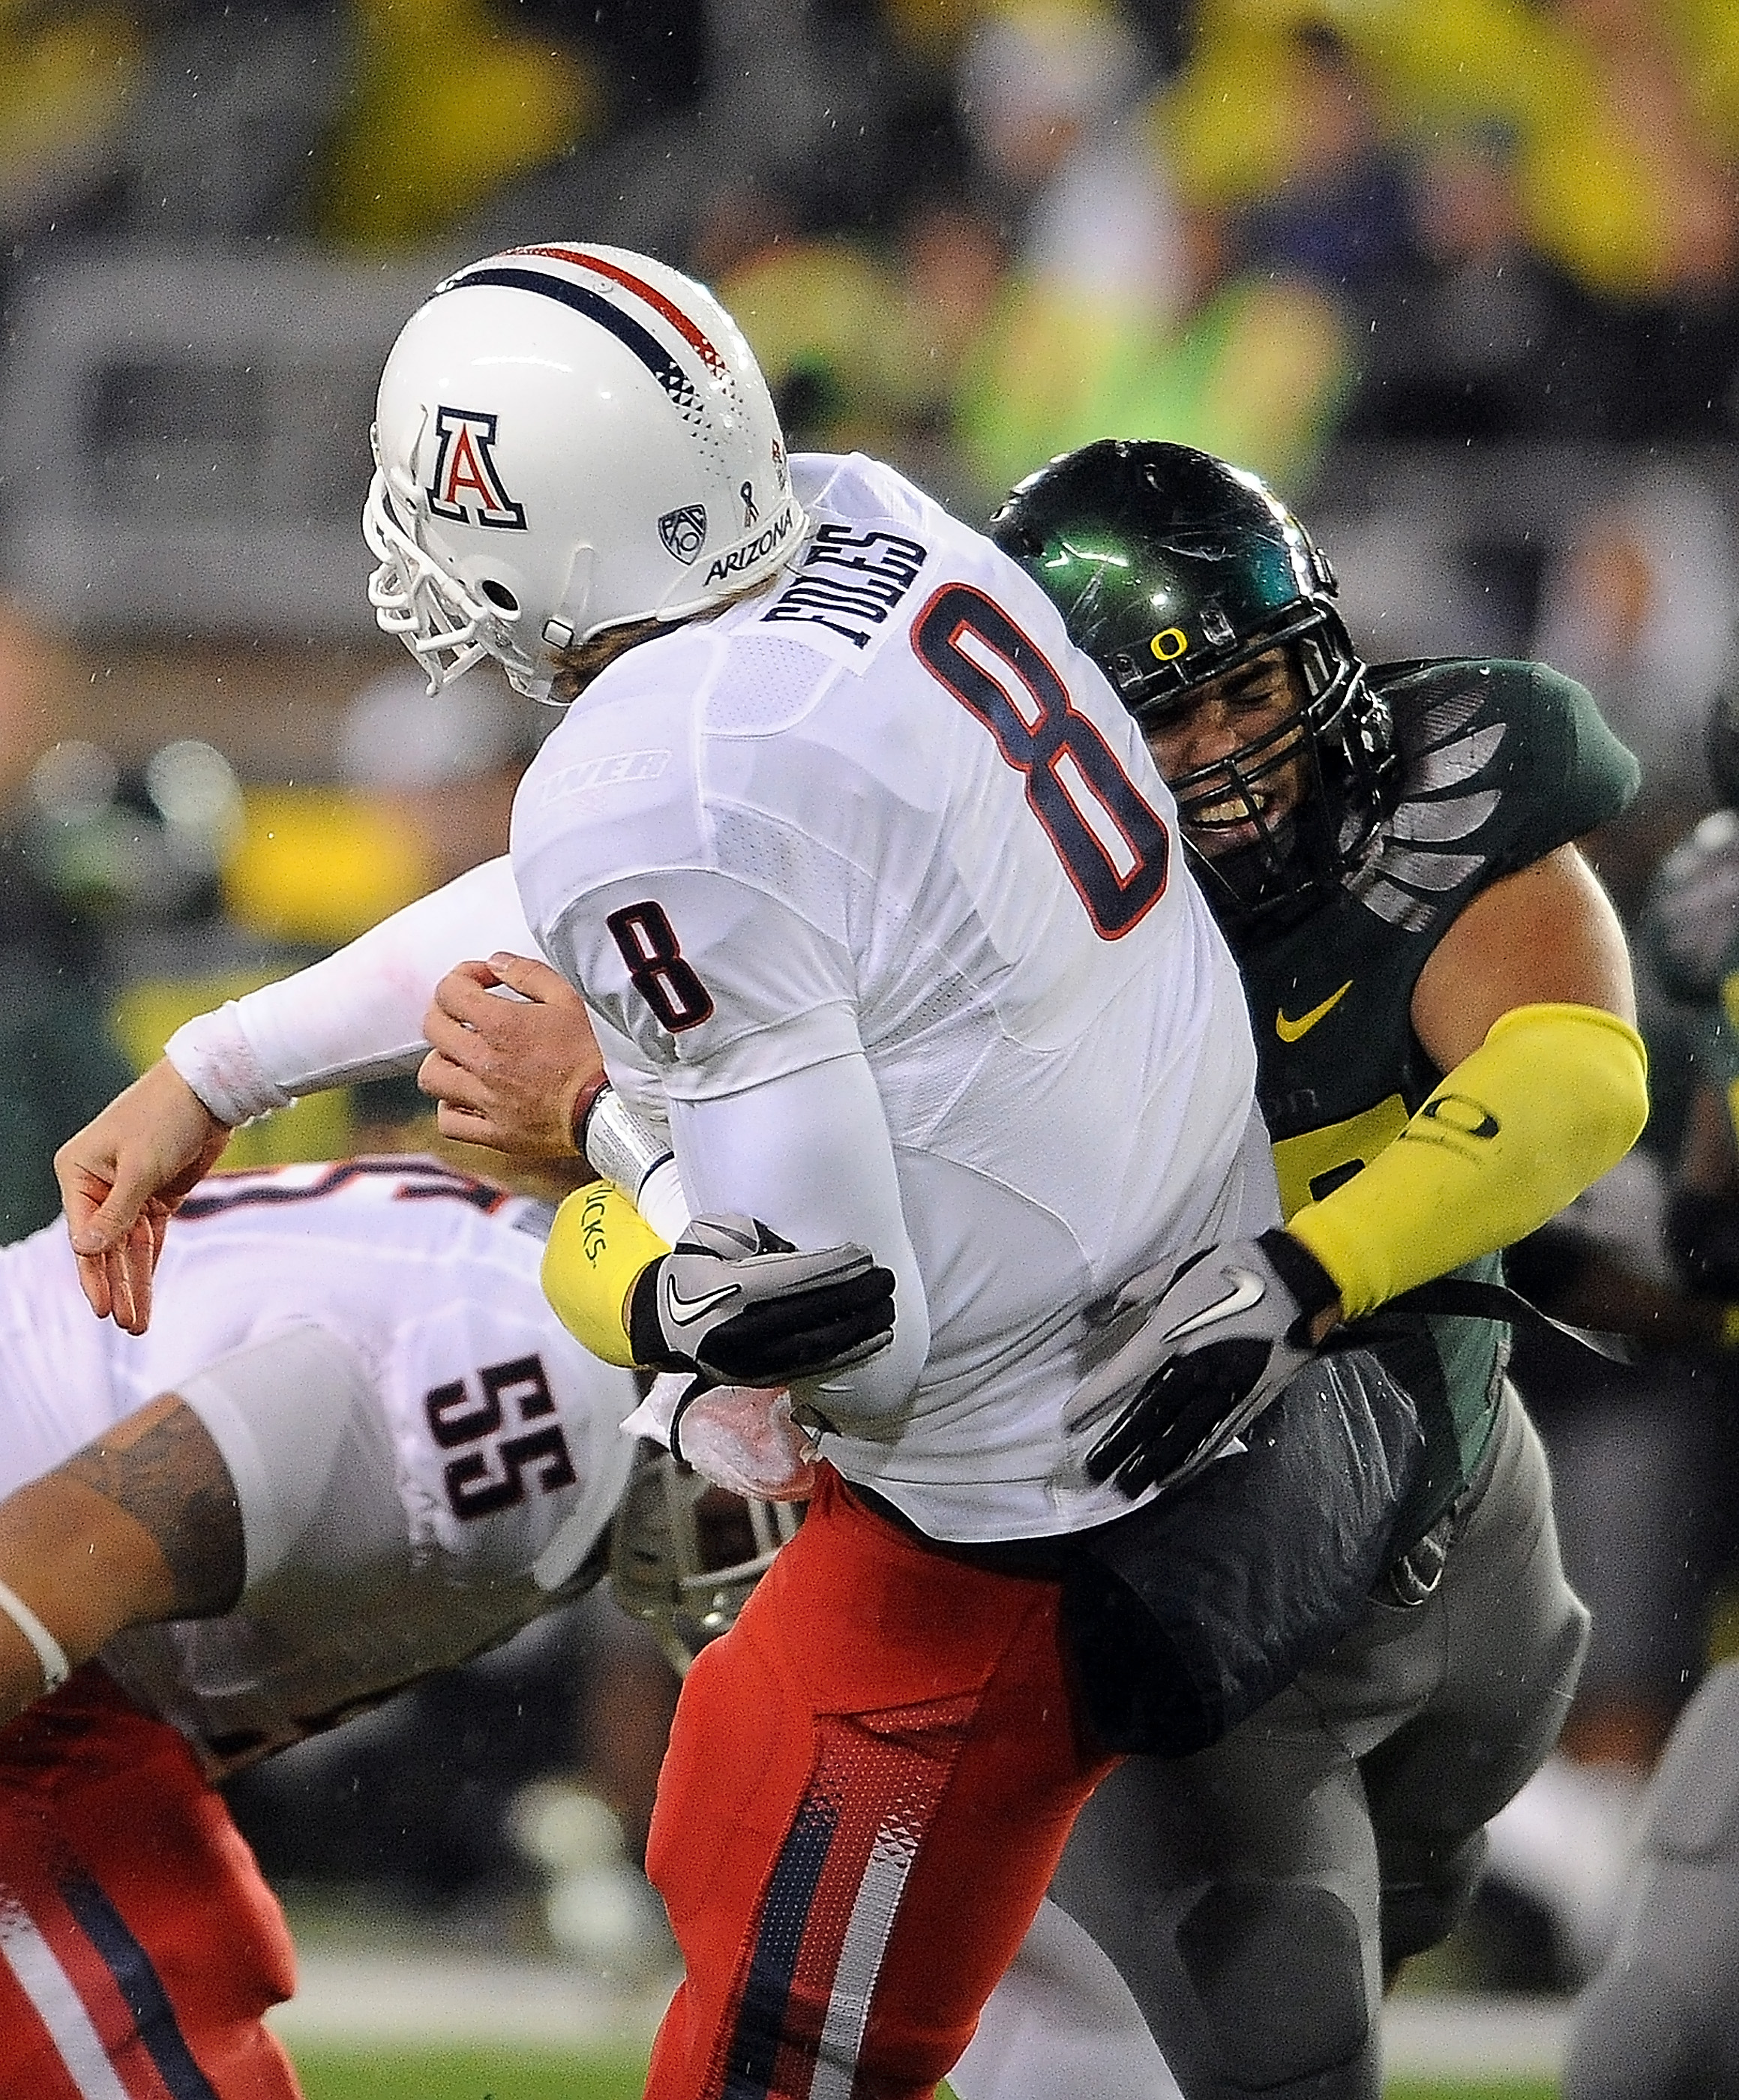 EUGENE, OR - NOVEMBER 26: Quarterback Nick Foles #8 of the Arizona Wildcats is hit by defensive tackle Zac Clark #99 of the Oregon Ducks in the third quarter of the game at Autzen Stadium on November 26, 2010 in Eugene, Oregon. The Ducks won the game 48-2